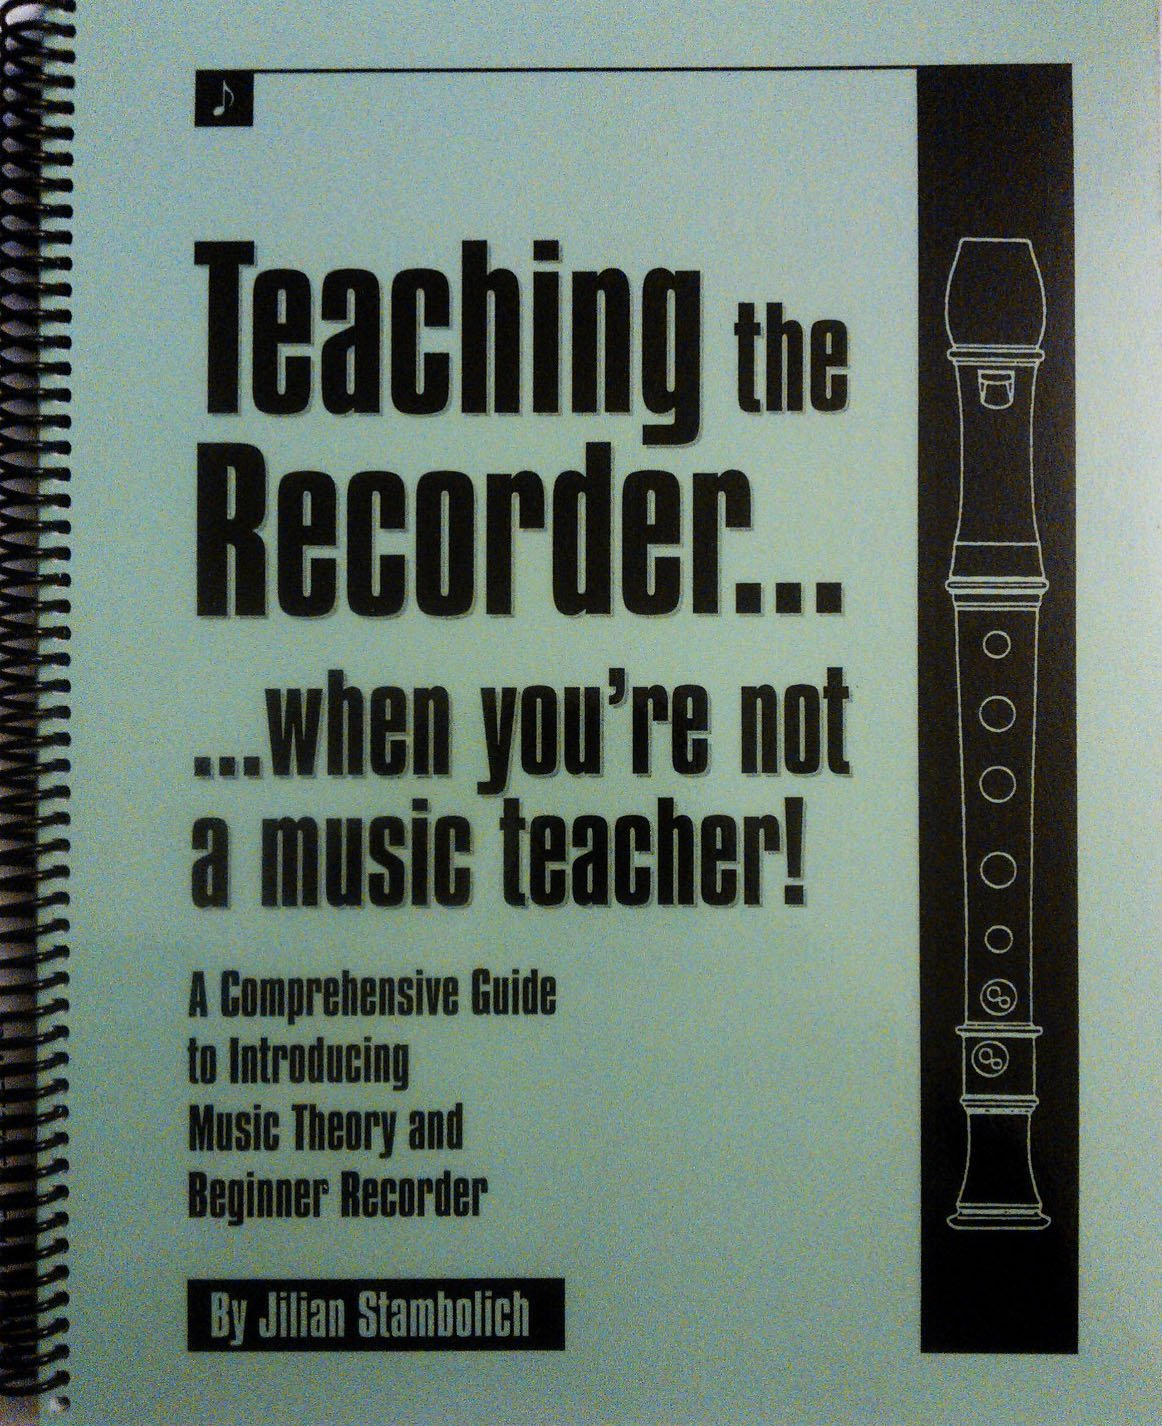 Teaching the Recorder... When You're Not a Music Teacher! pdf